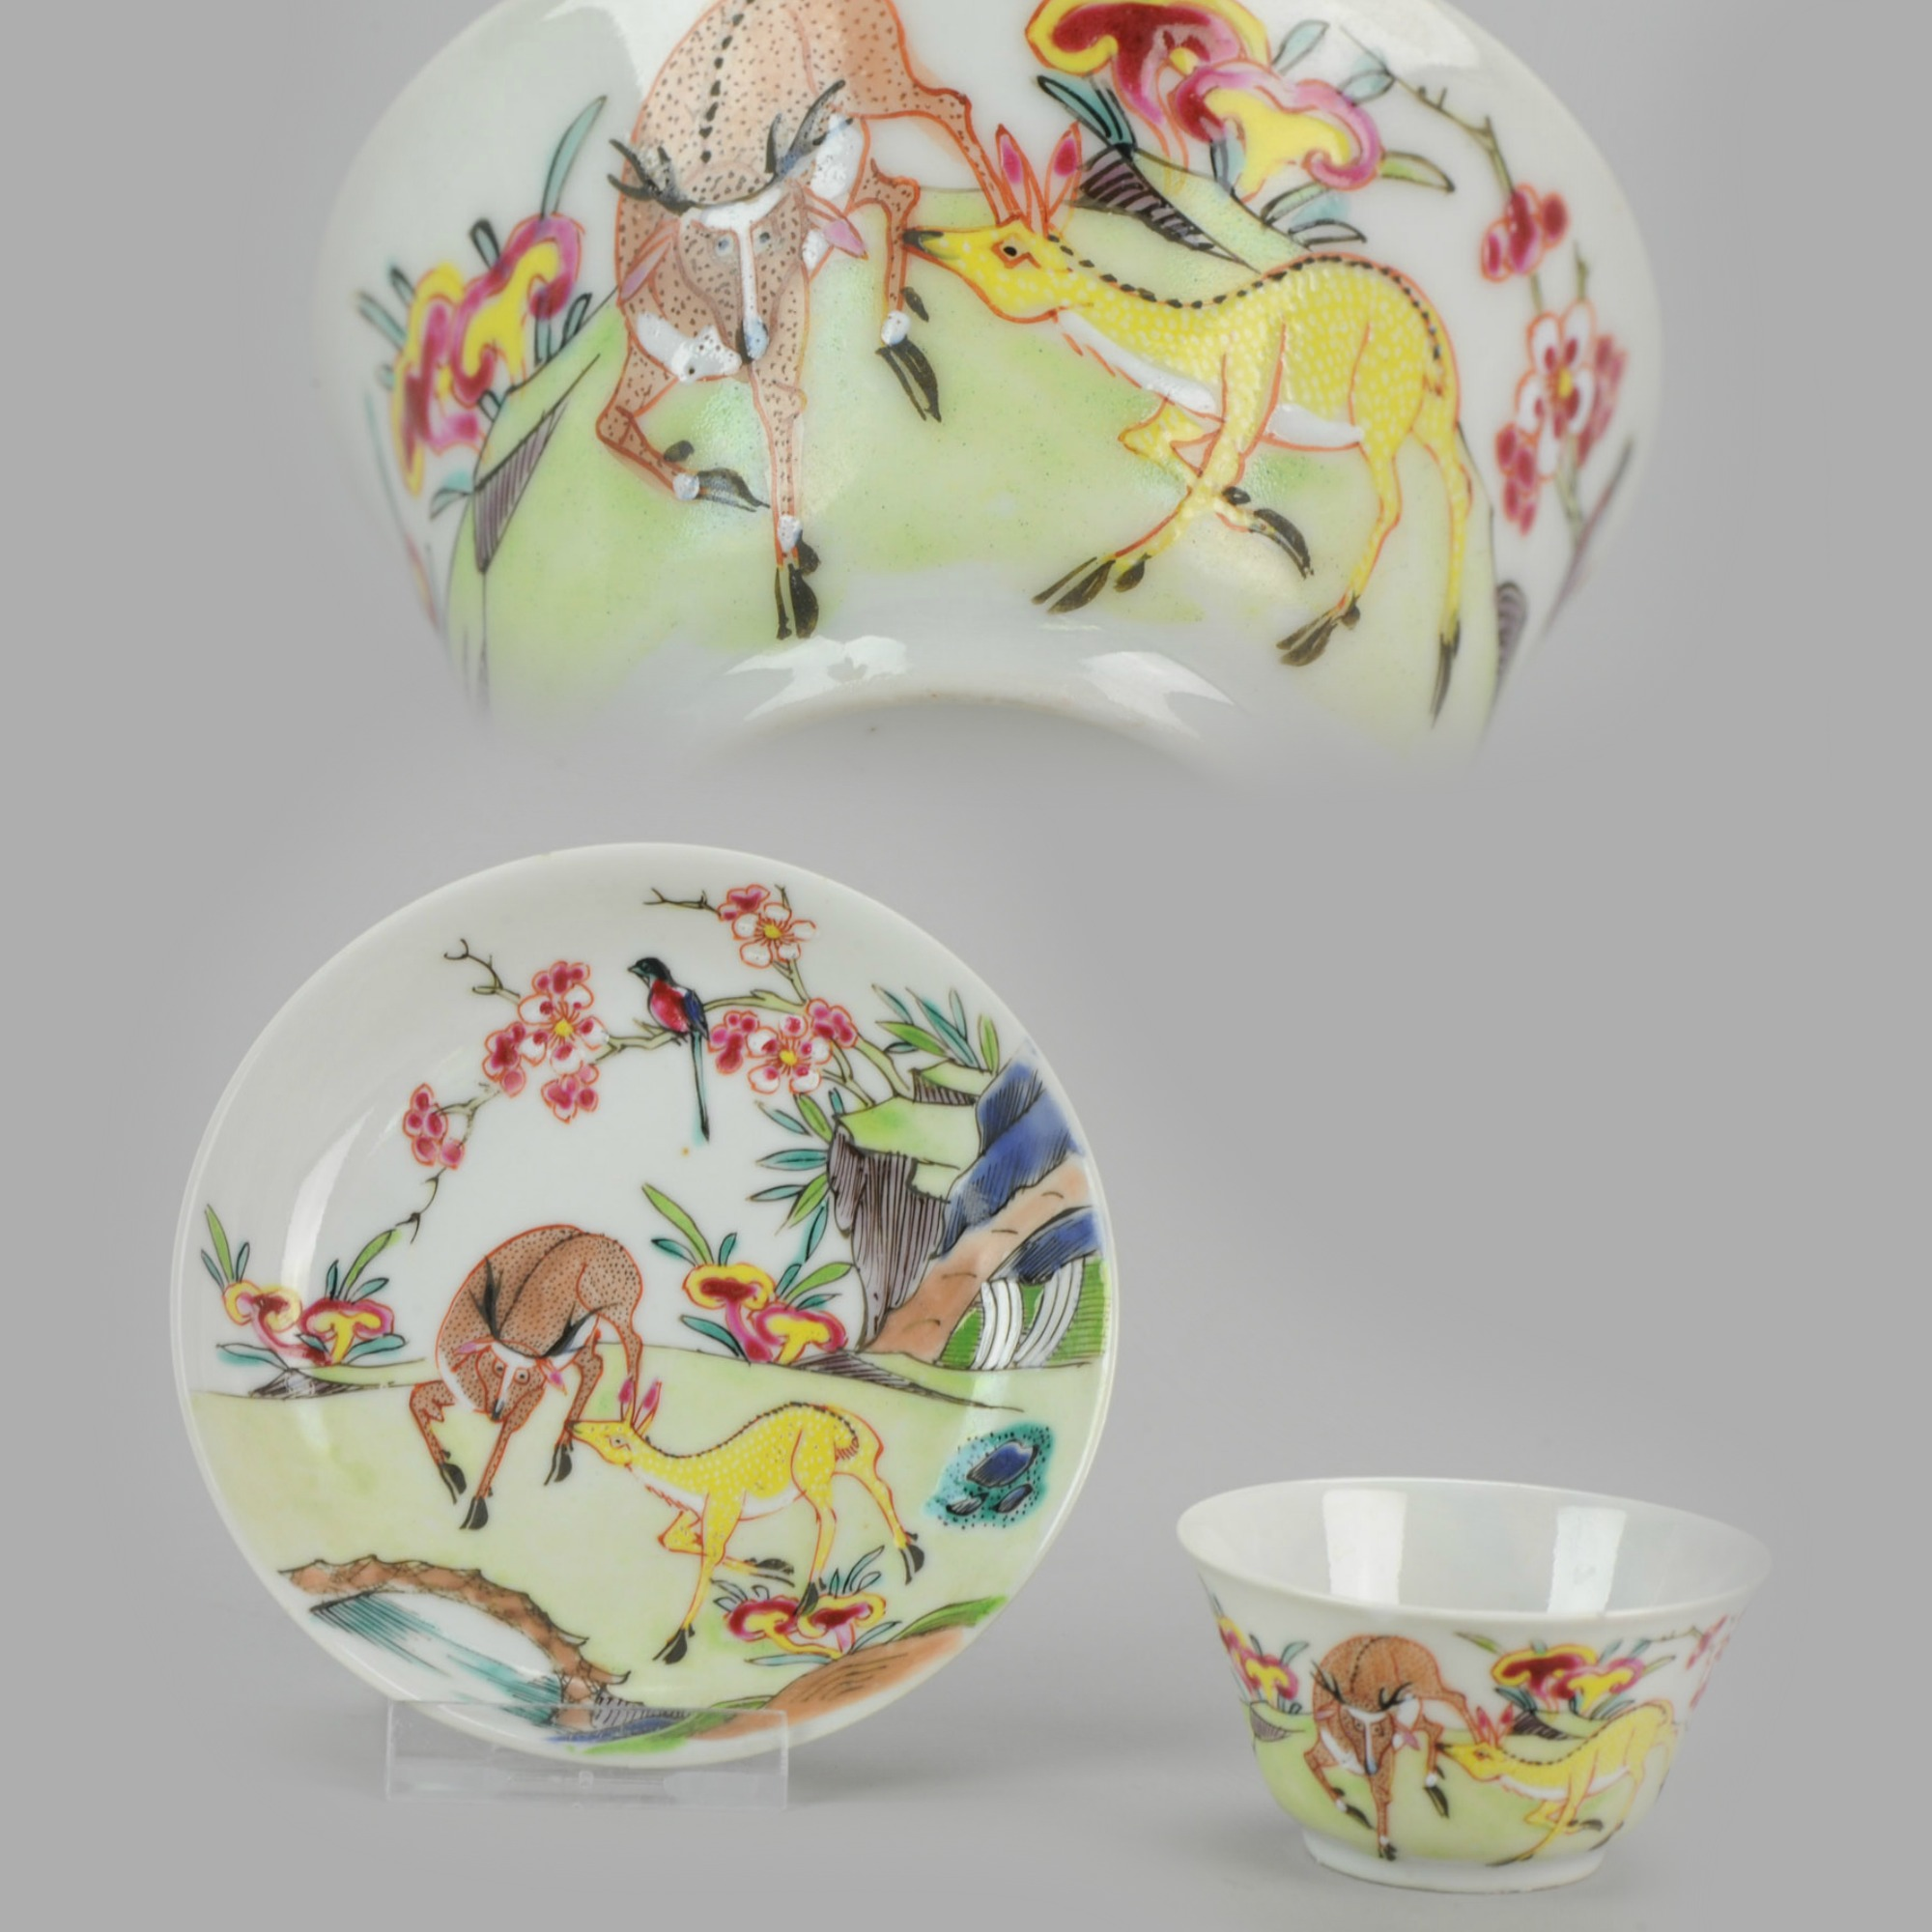 Details about Rare Antique Yongzheng Period Chinese Porcelain Cup Saucer  Deer Funghi[: